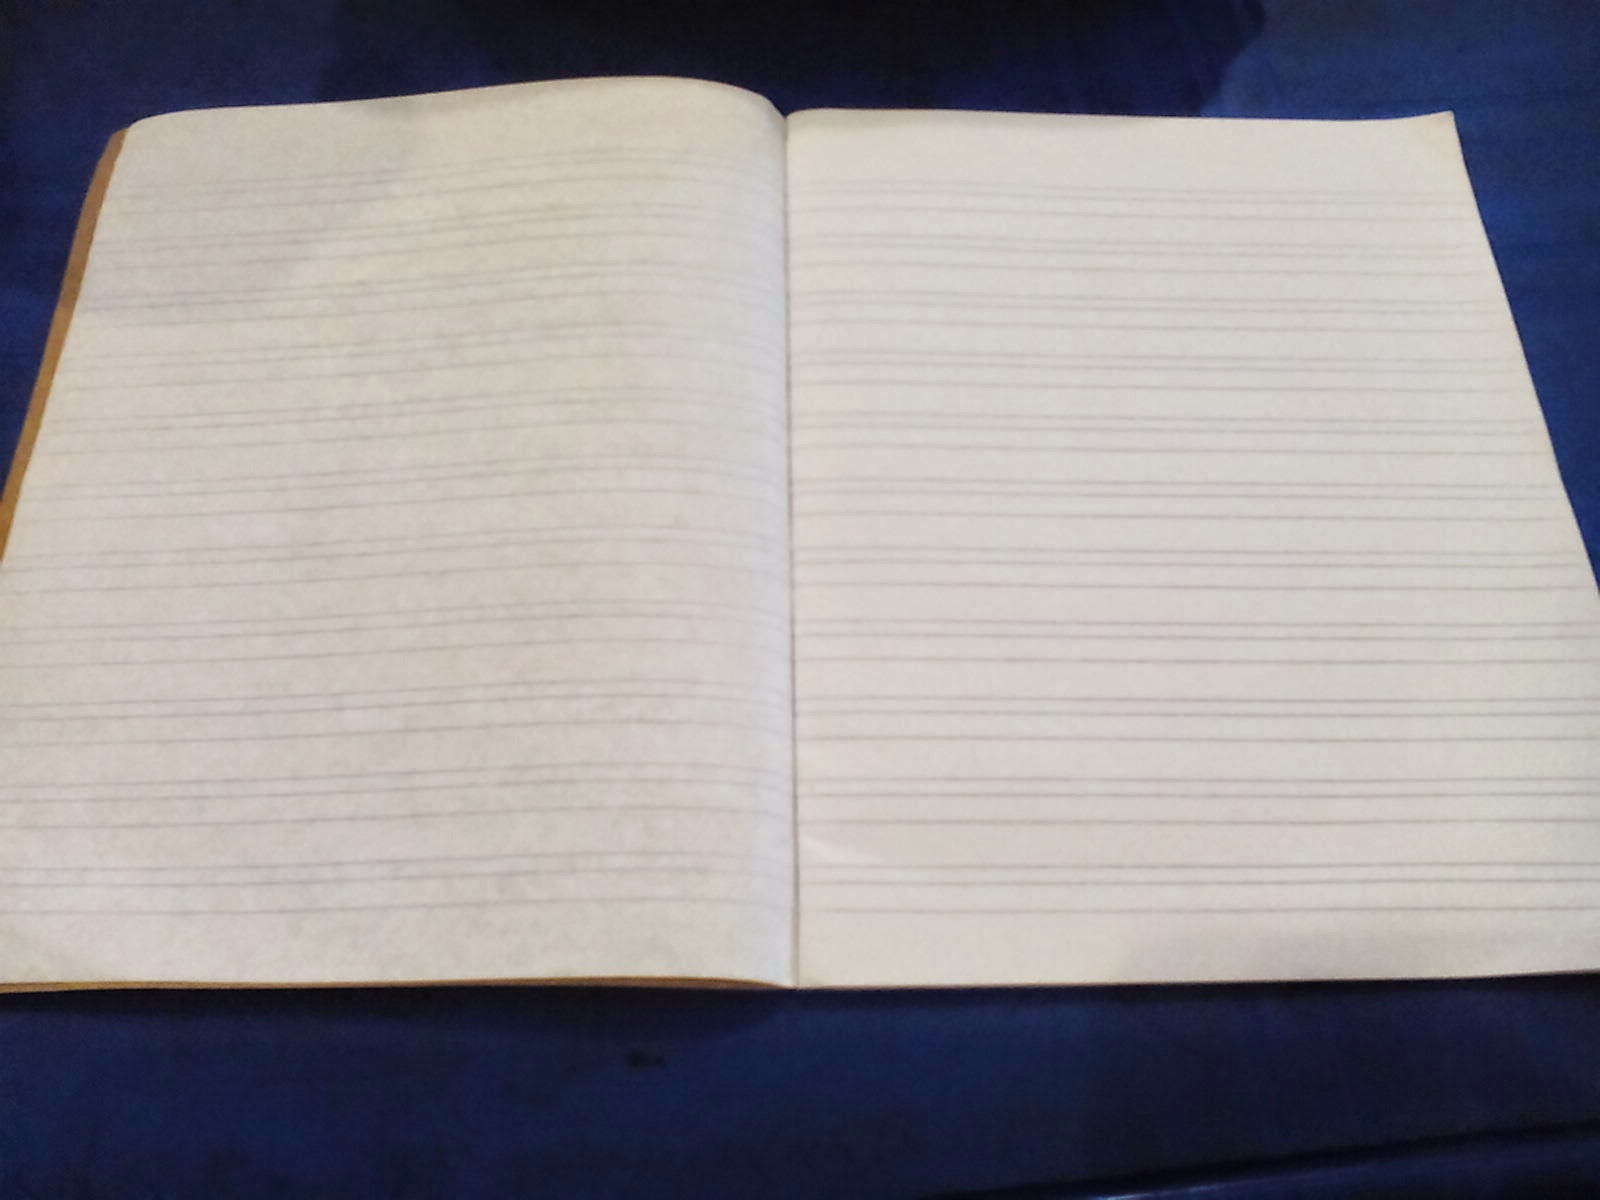 Recycle do it yourself rdiy how to make your own beauty and notebook from your last school year or you can rdiy one from unused notebook papers i posted a post on how to do this and you can get to the site here solutioingenieria Images